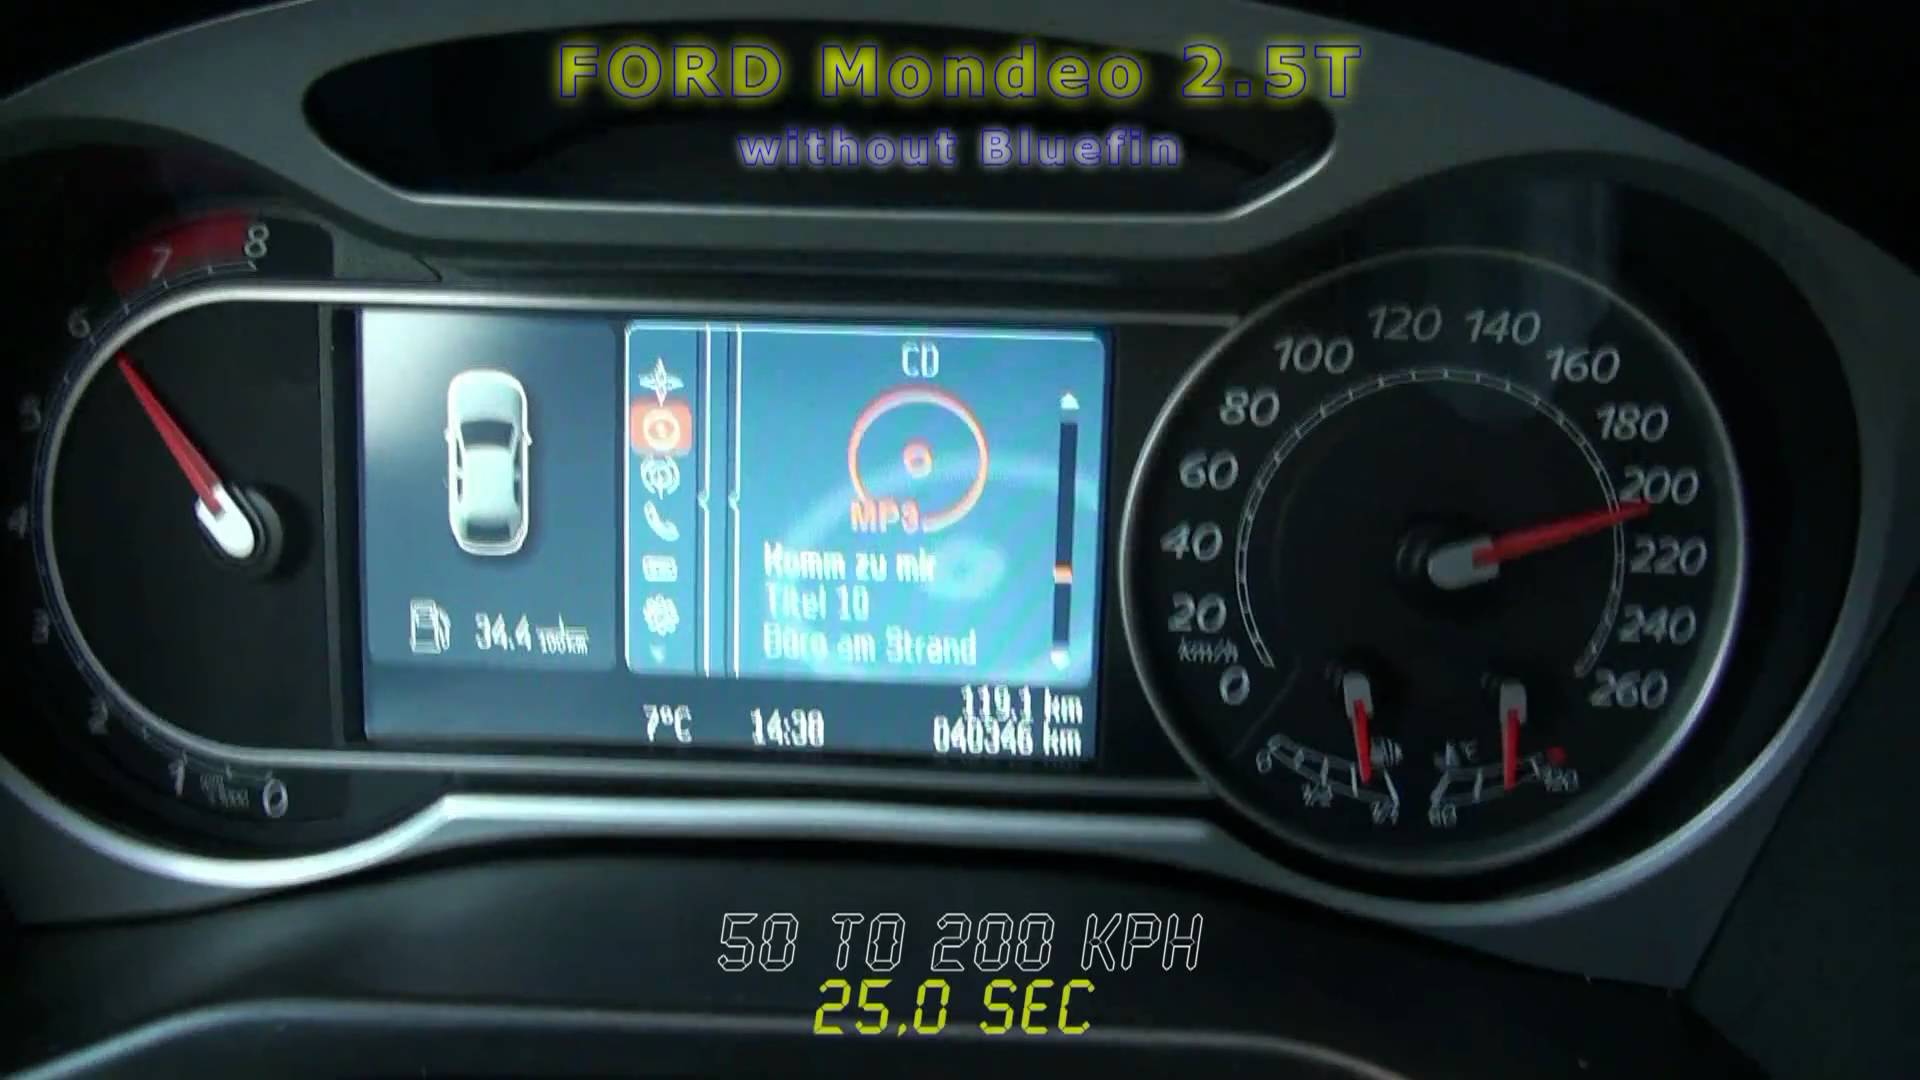 Ford Mondeo 2.5T 2010 photo - 12